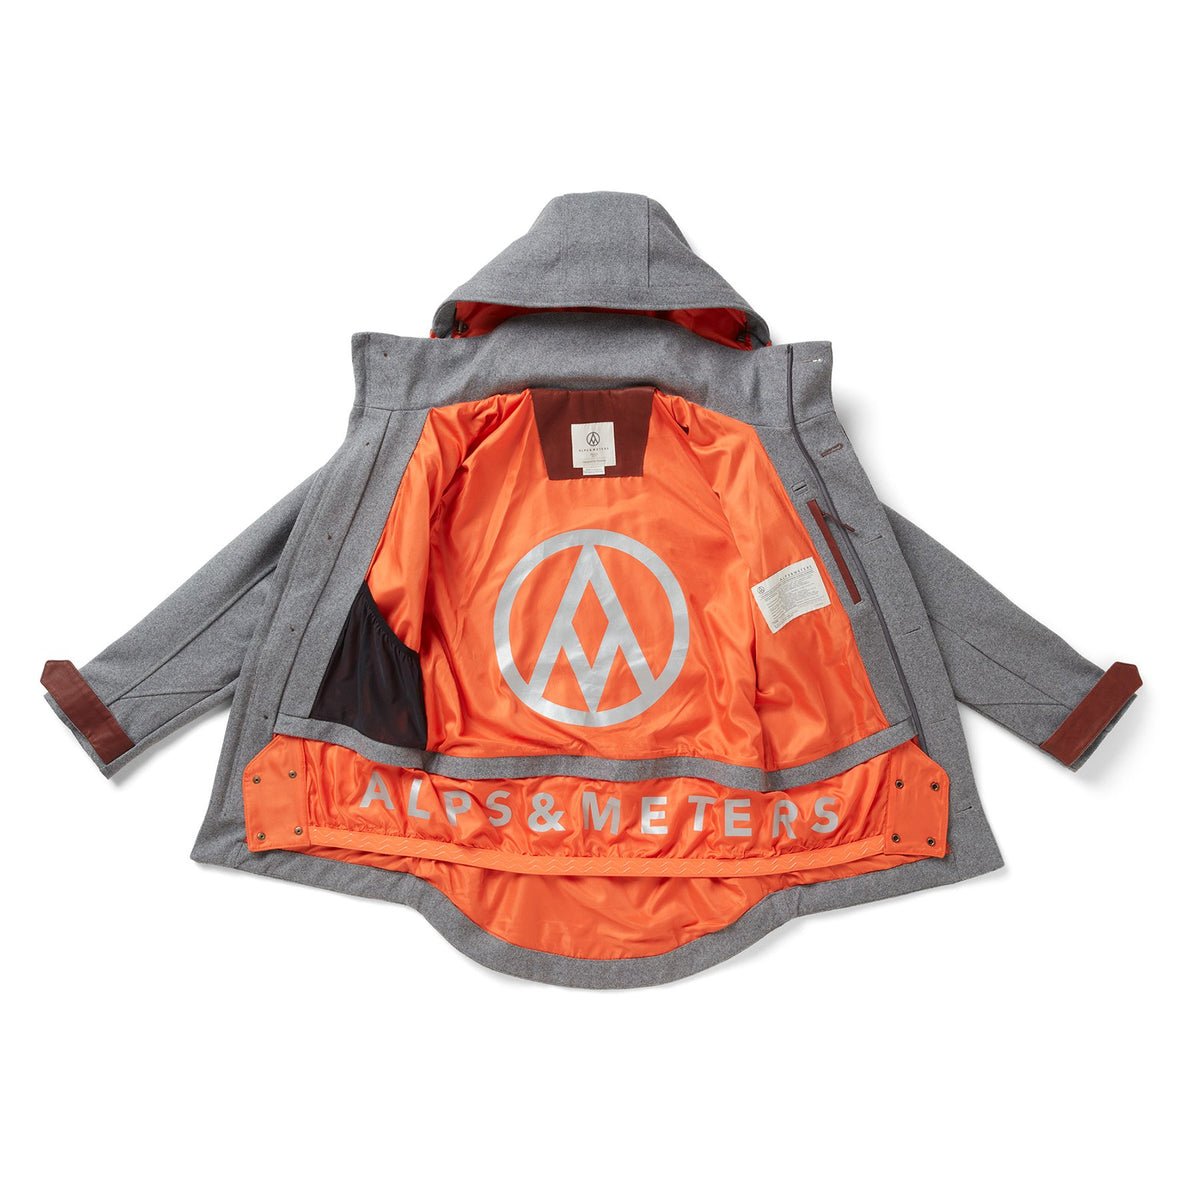 Alpine Outrig Jacket-Alps&Meters